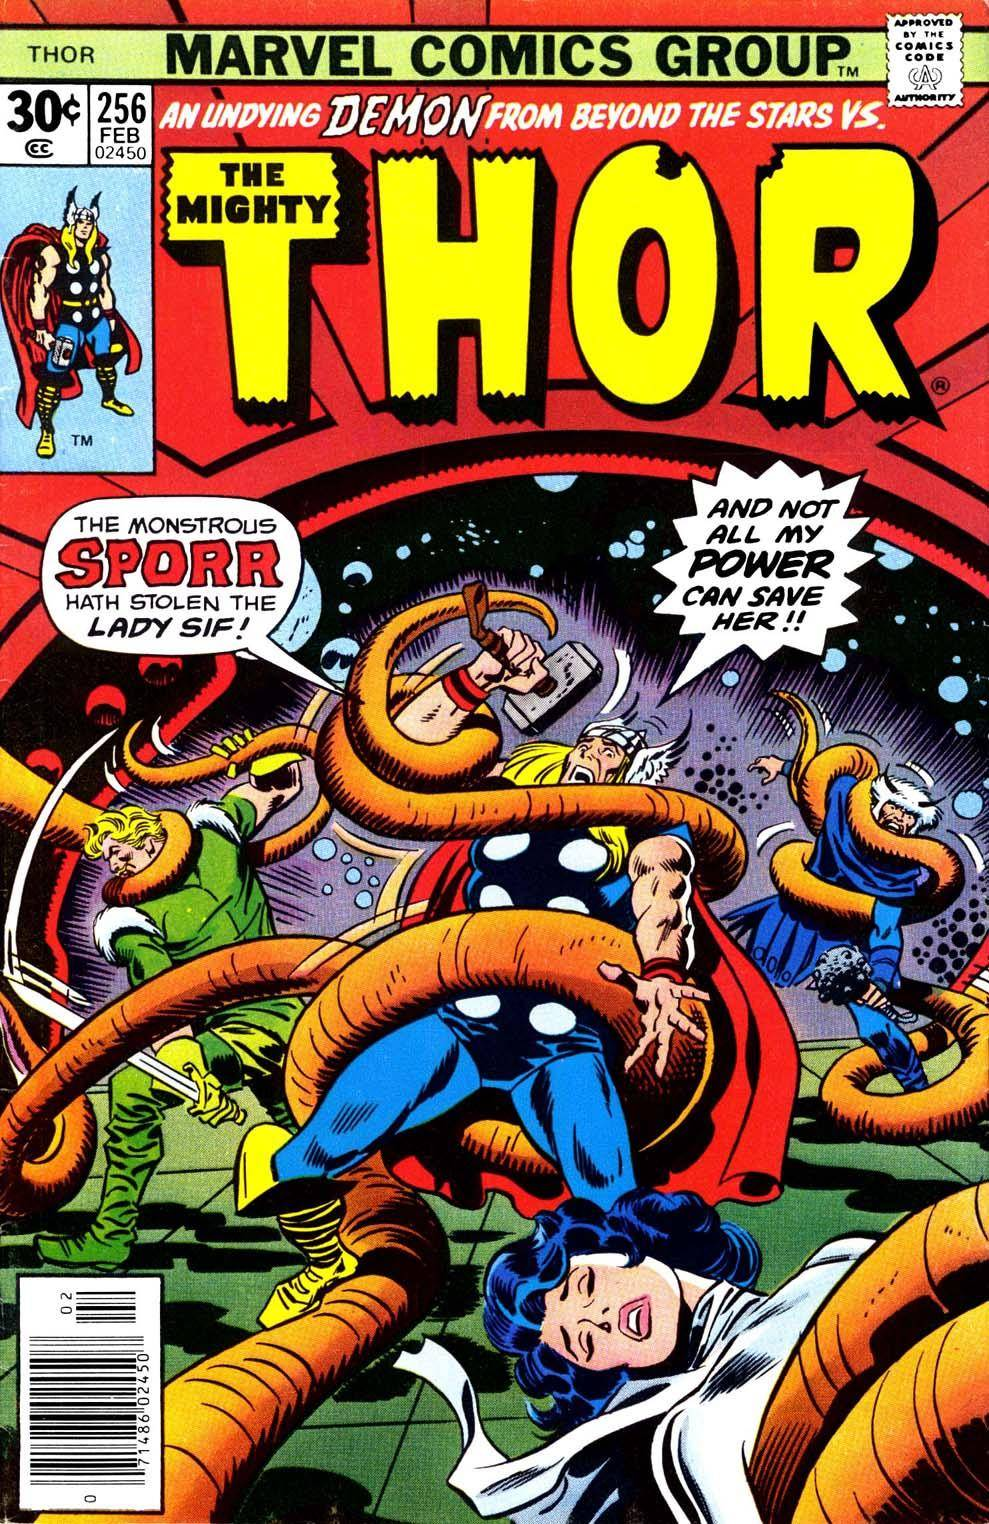 For Wylekyot The Mighty Thor v1 256 cbr